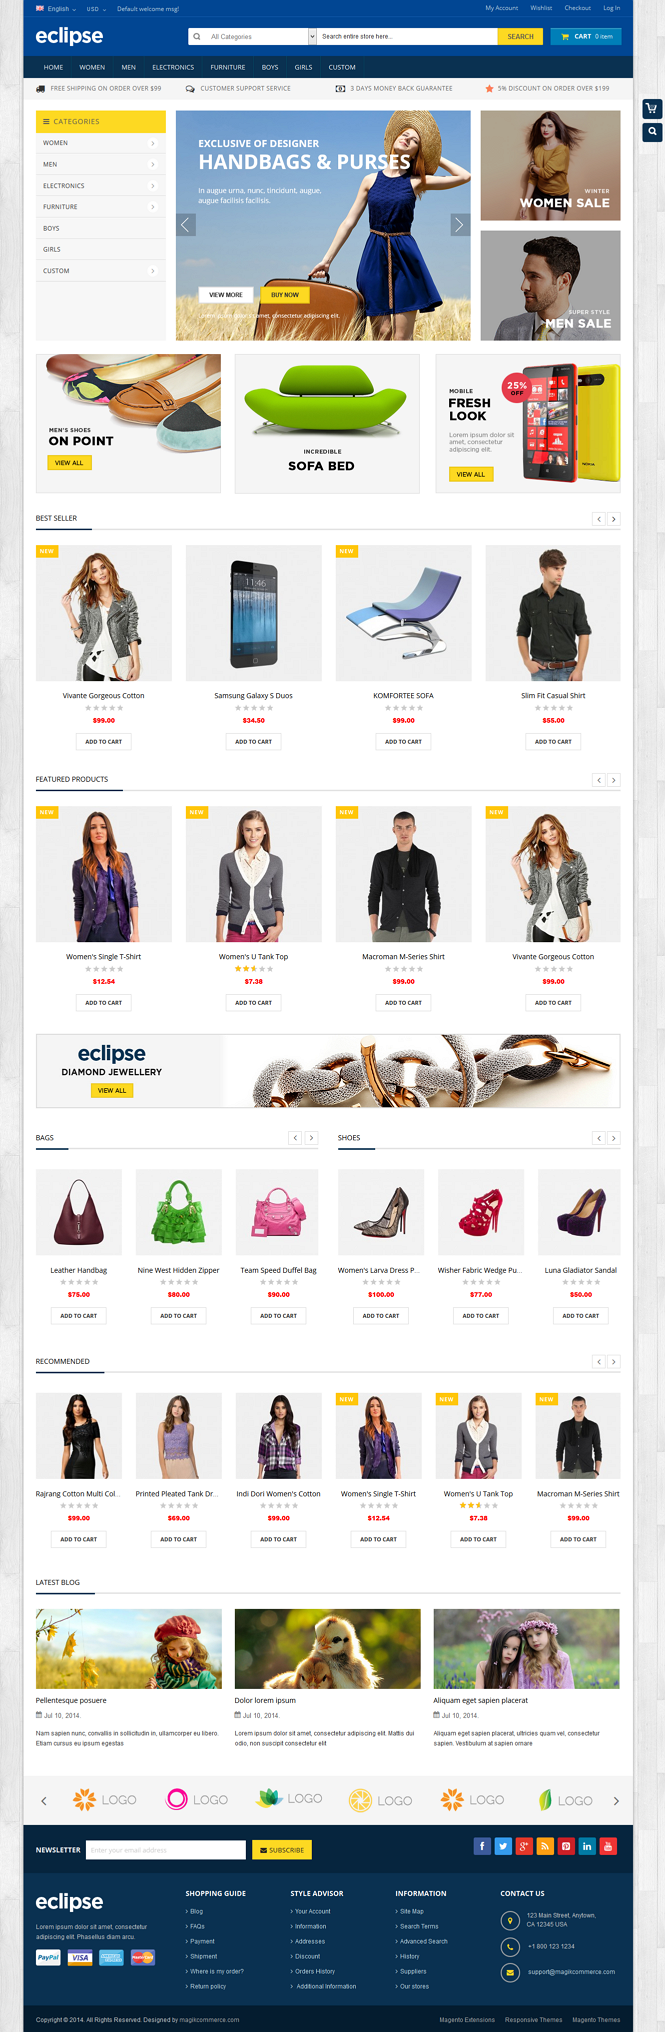 Eclipse is a responsive multipurpose Magento theme which is fully customizable and suitable for ...